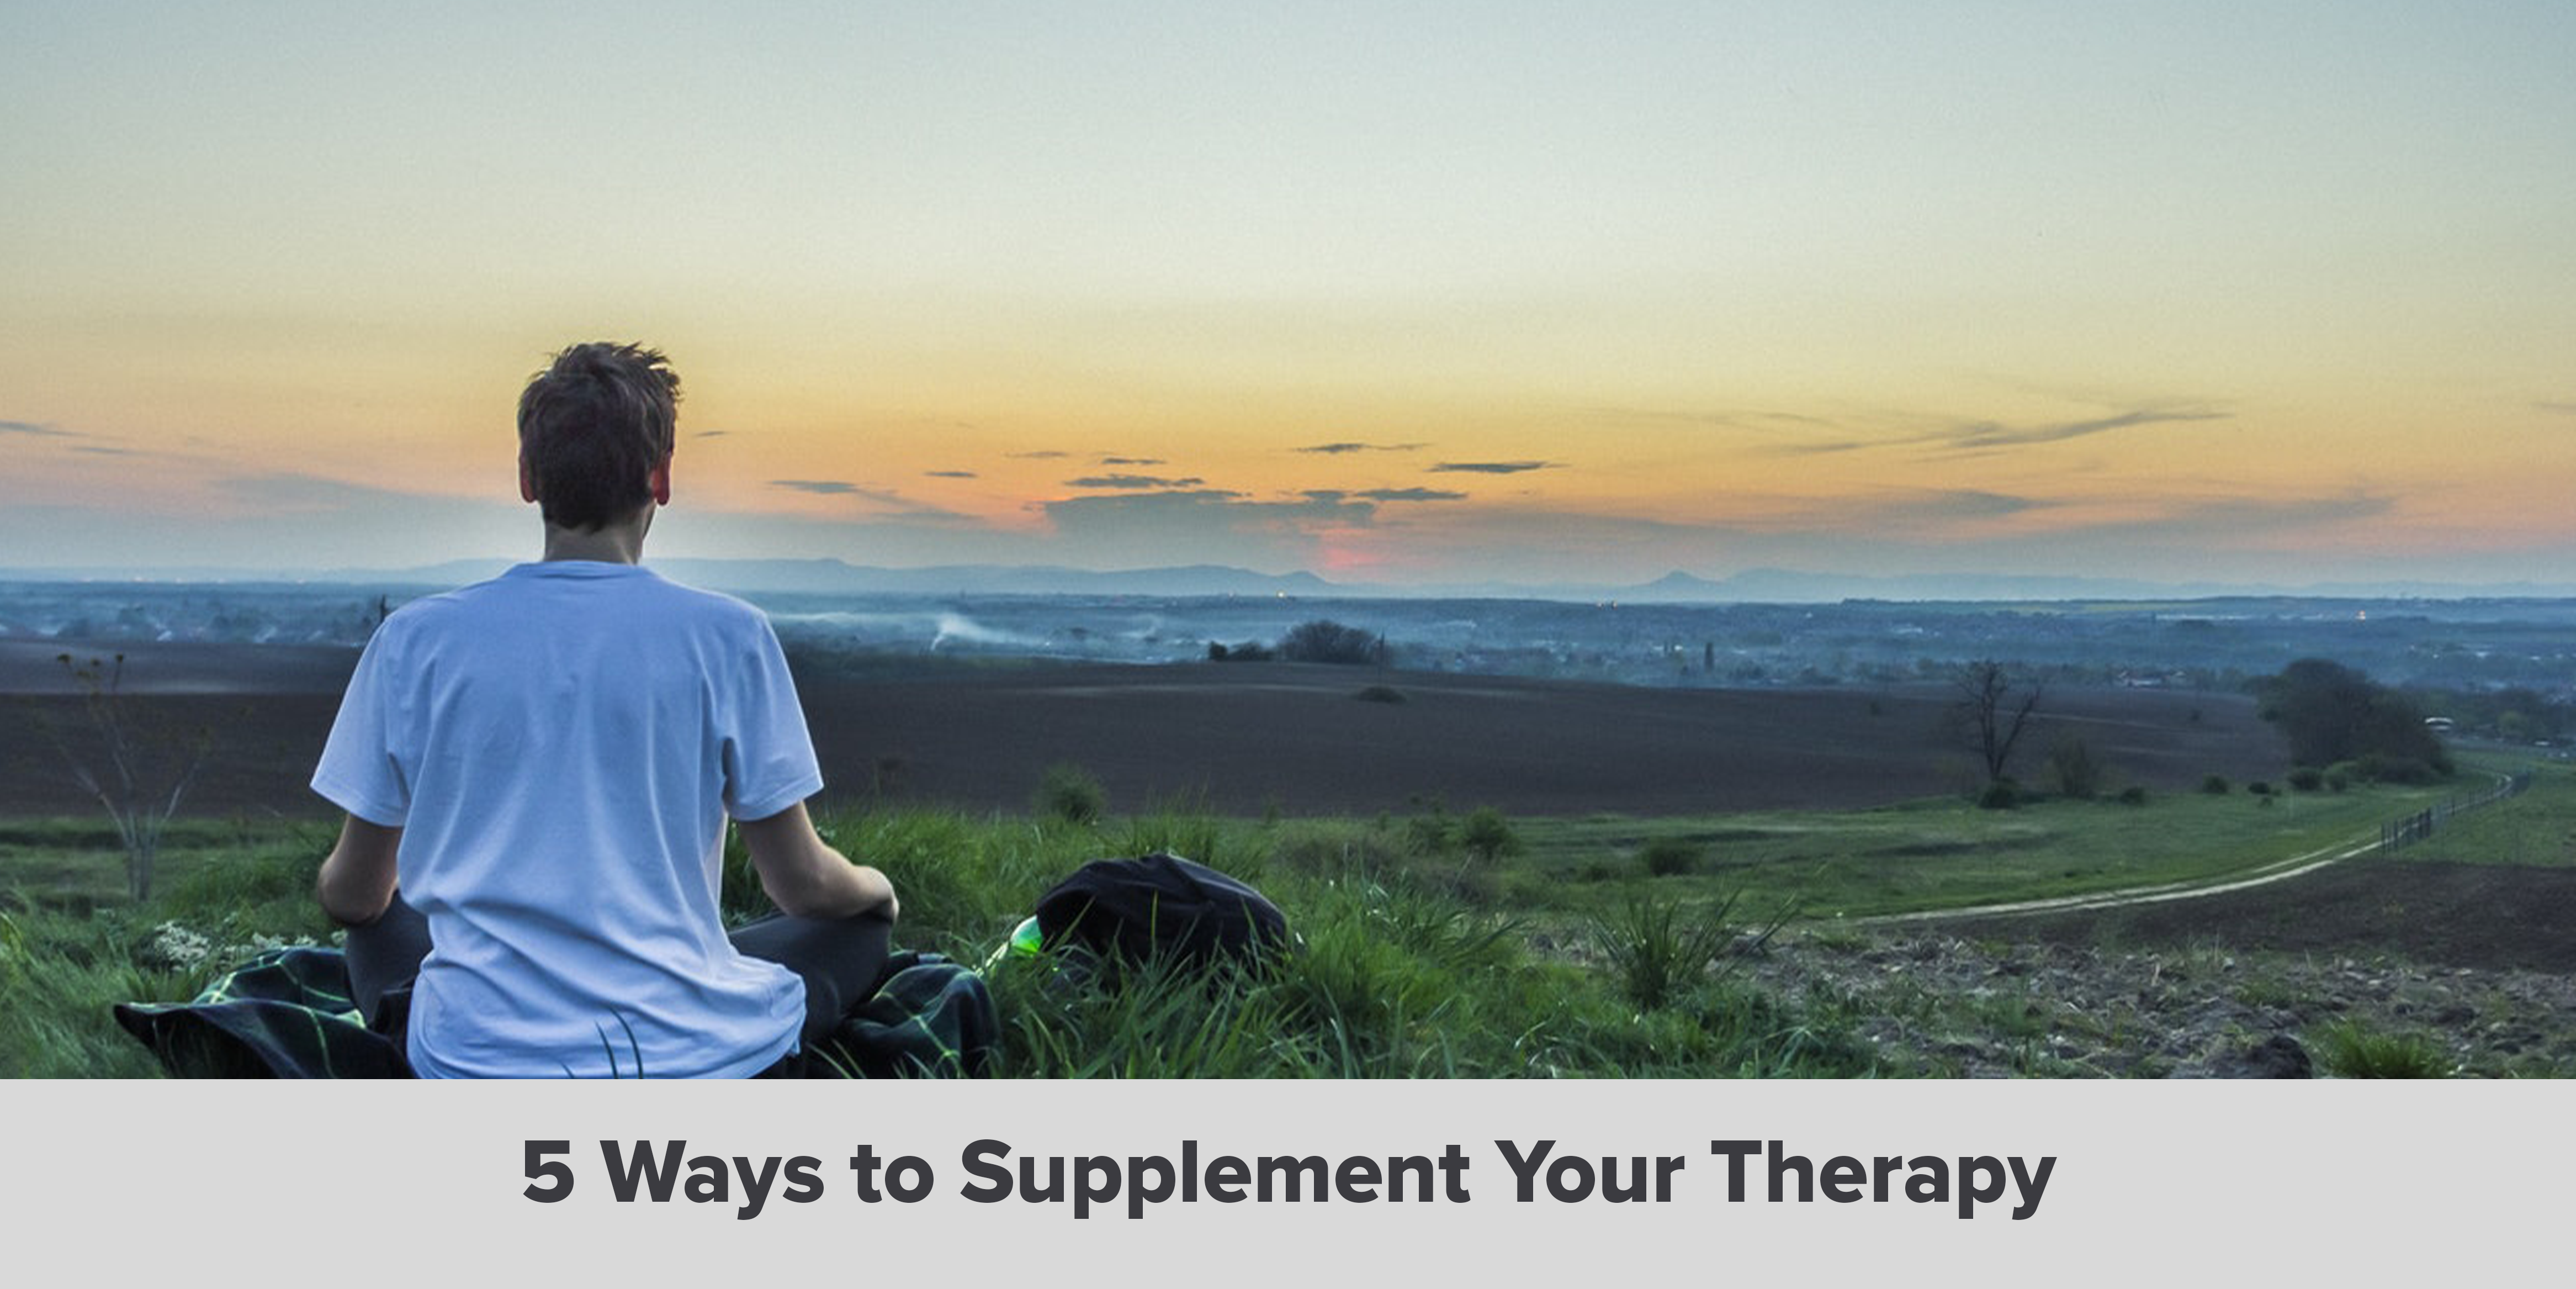 5 Ways to Supplement Your Therapy